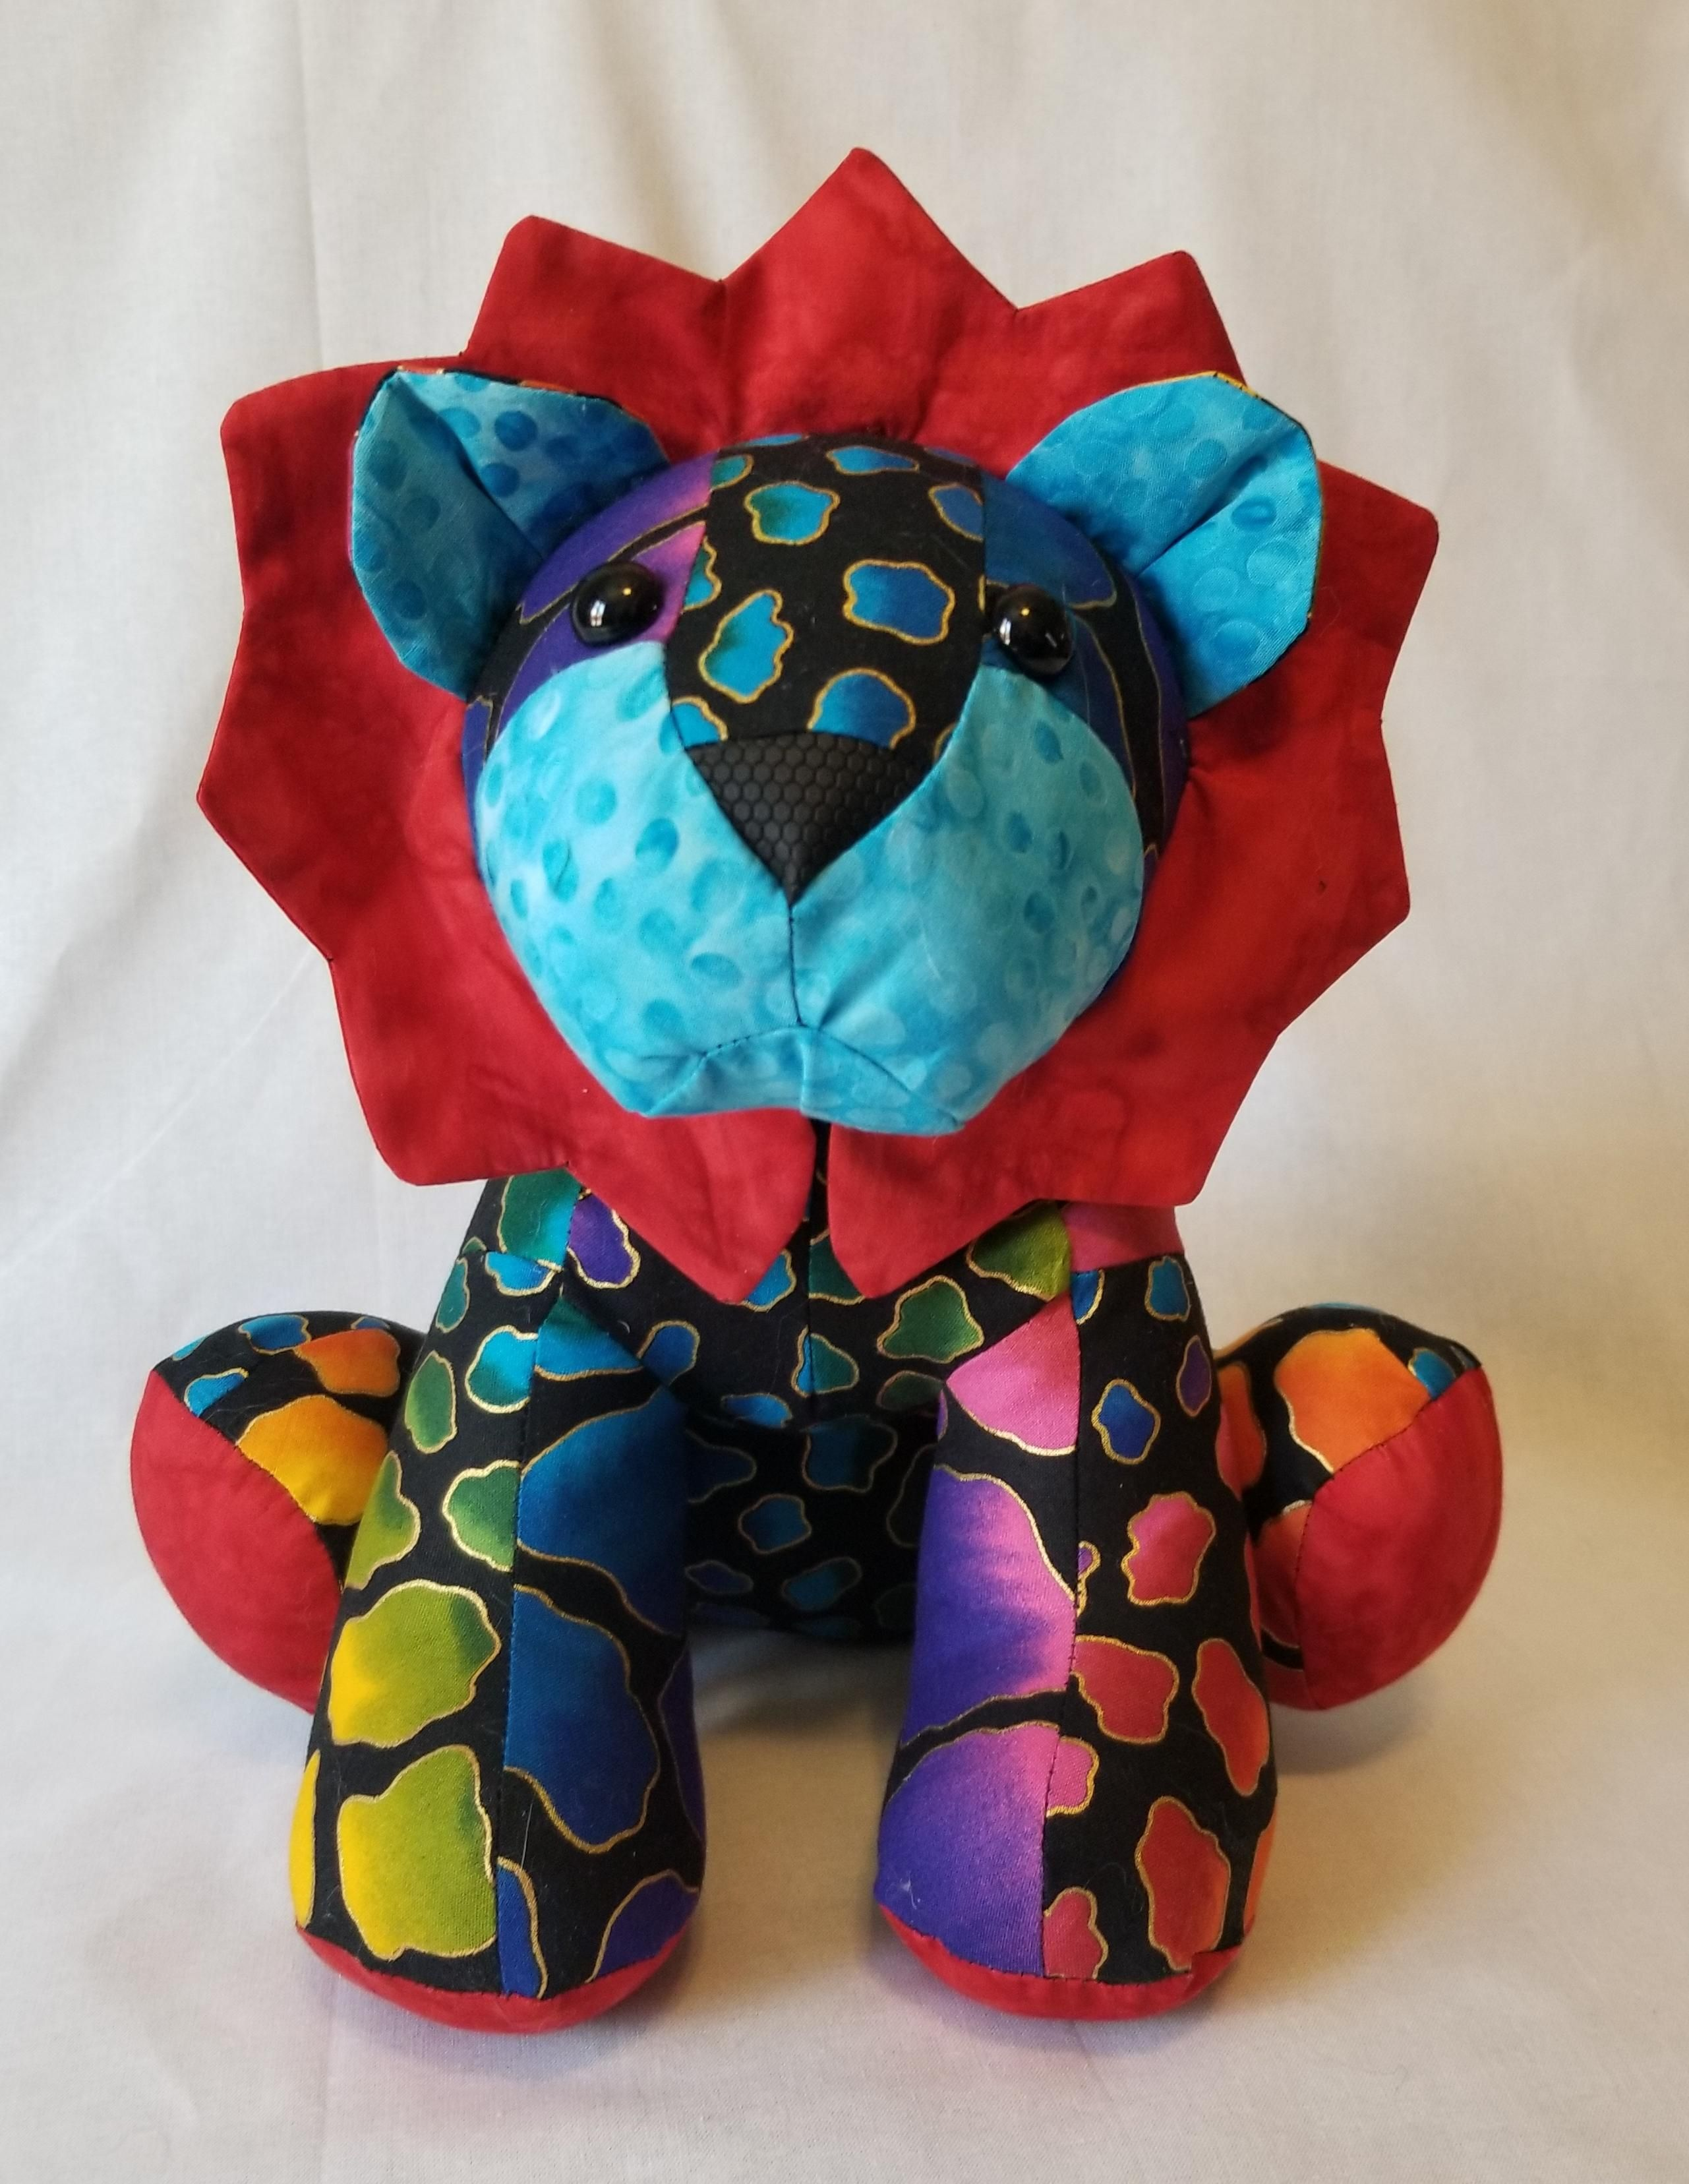 Made from a funky friends factory pattern sewing crafts